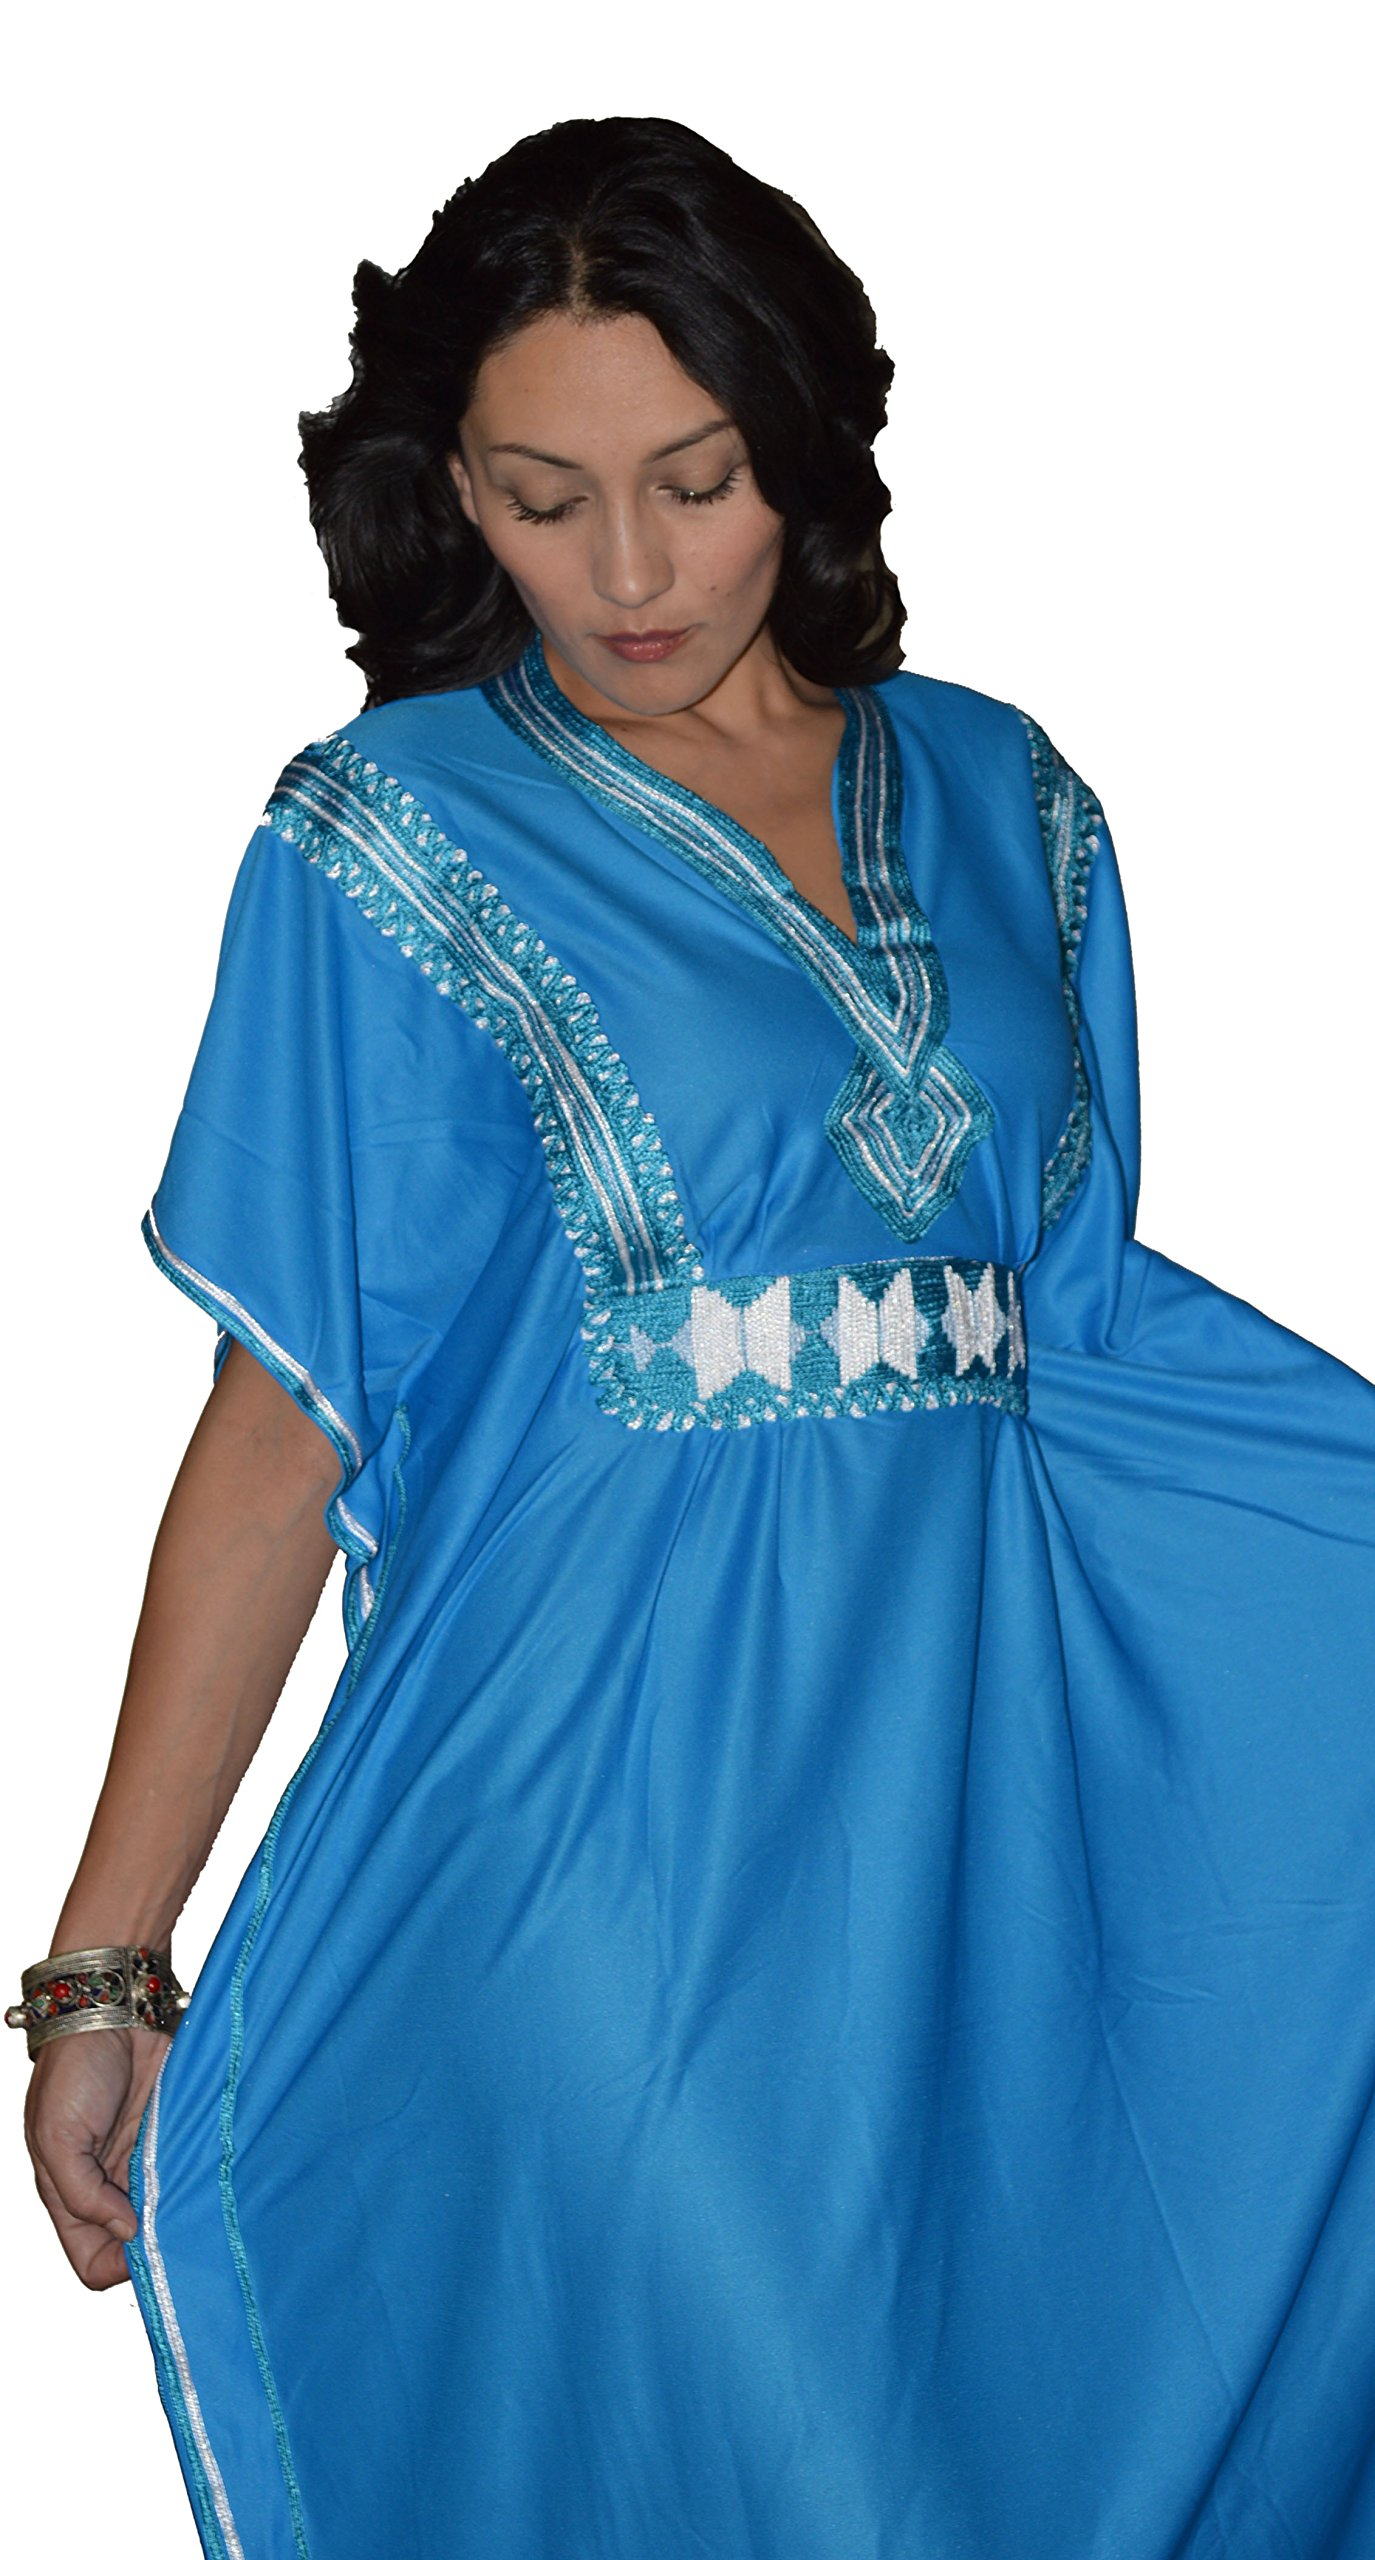 Moroccan Caftans Women Breathable Handmade Butterfly Style Embroidery Ethnic Design Blue by Moroccan Caftans (Image #2)